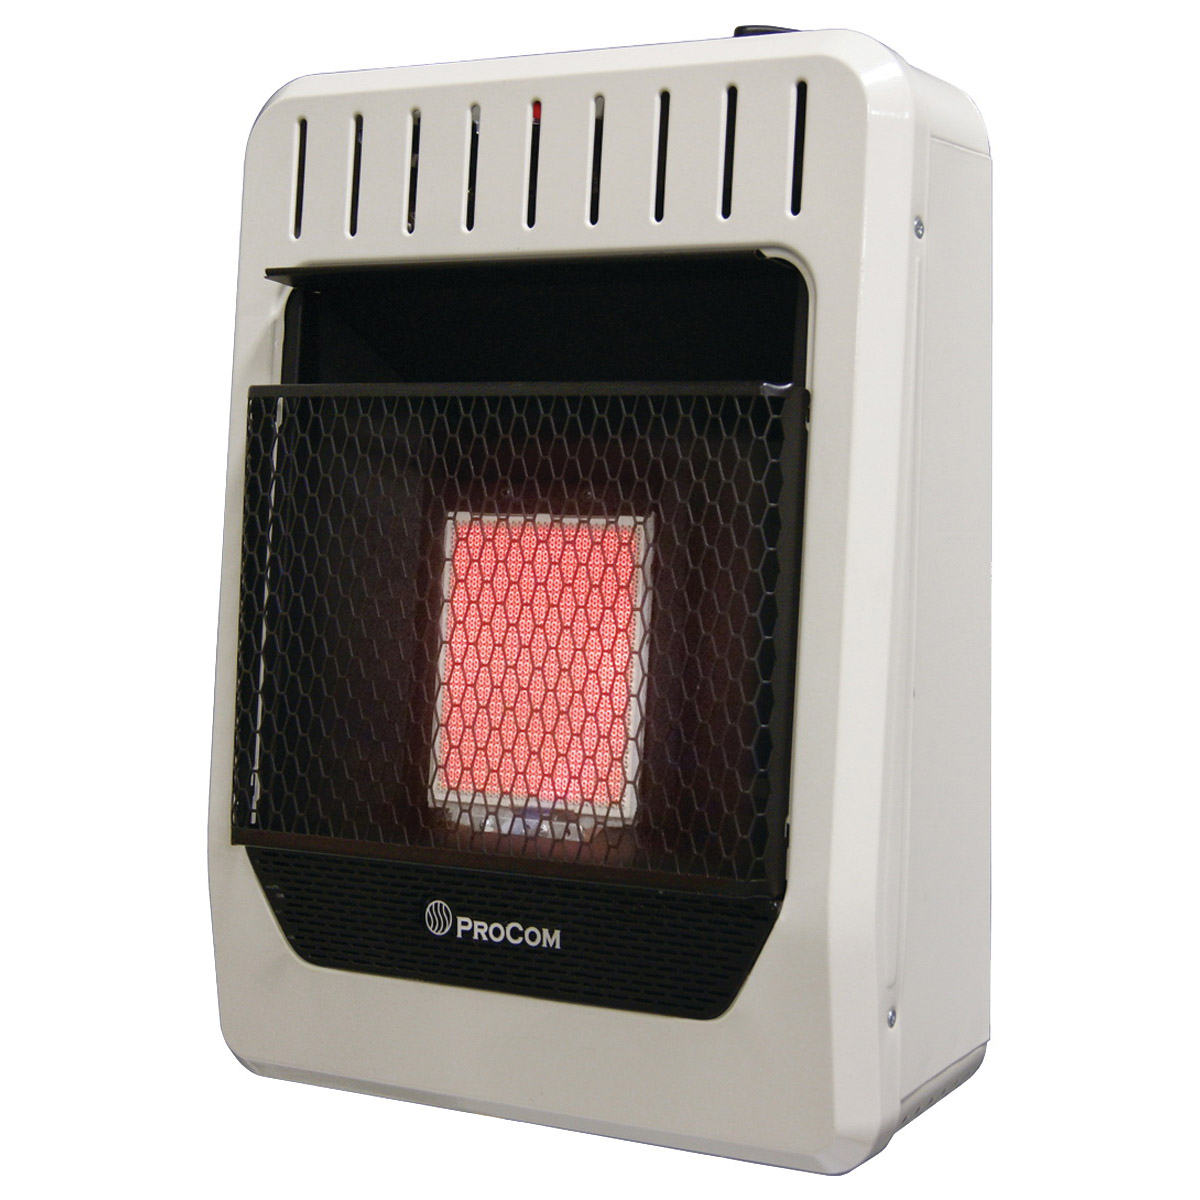 Picture of PROCOM HEATING MG1TIR Ventless Dual Fuel Heater, 15.79 in W, 21.2 in H, 10,000 Btu Heating, Natural Gas, Propane